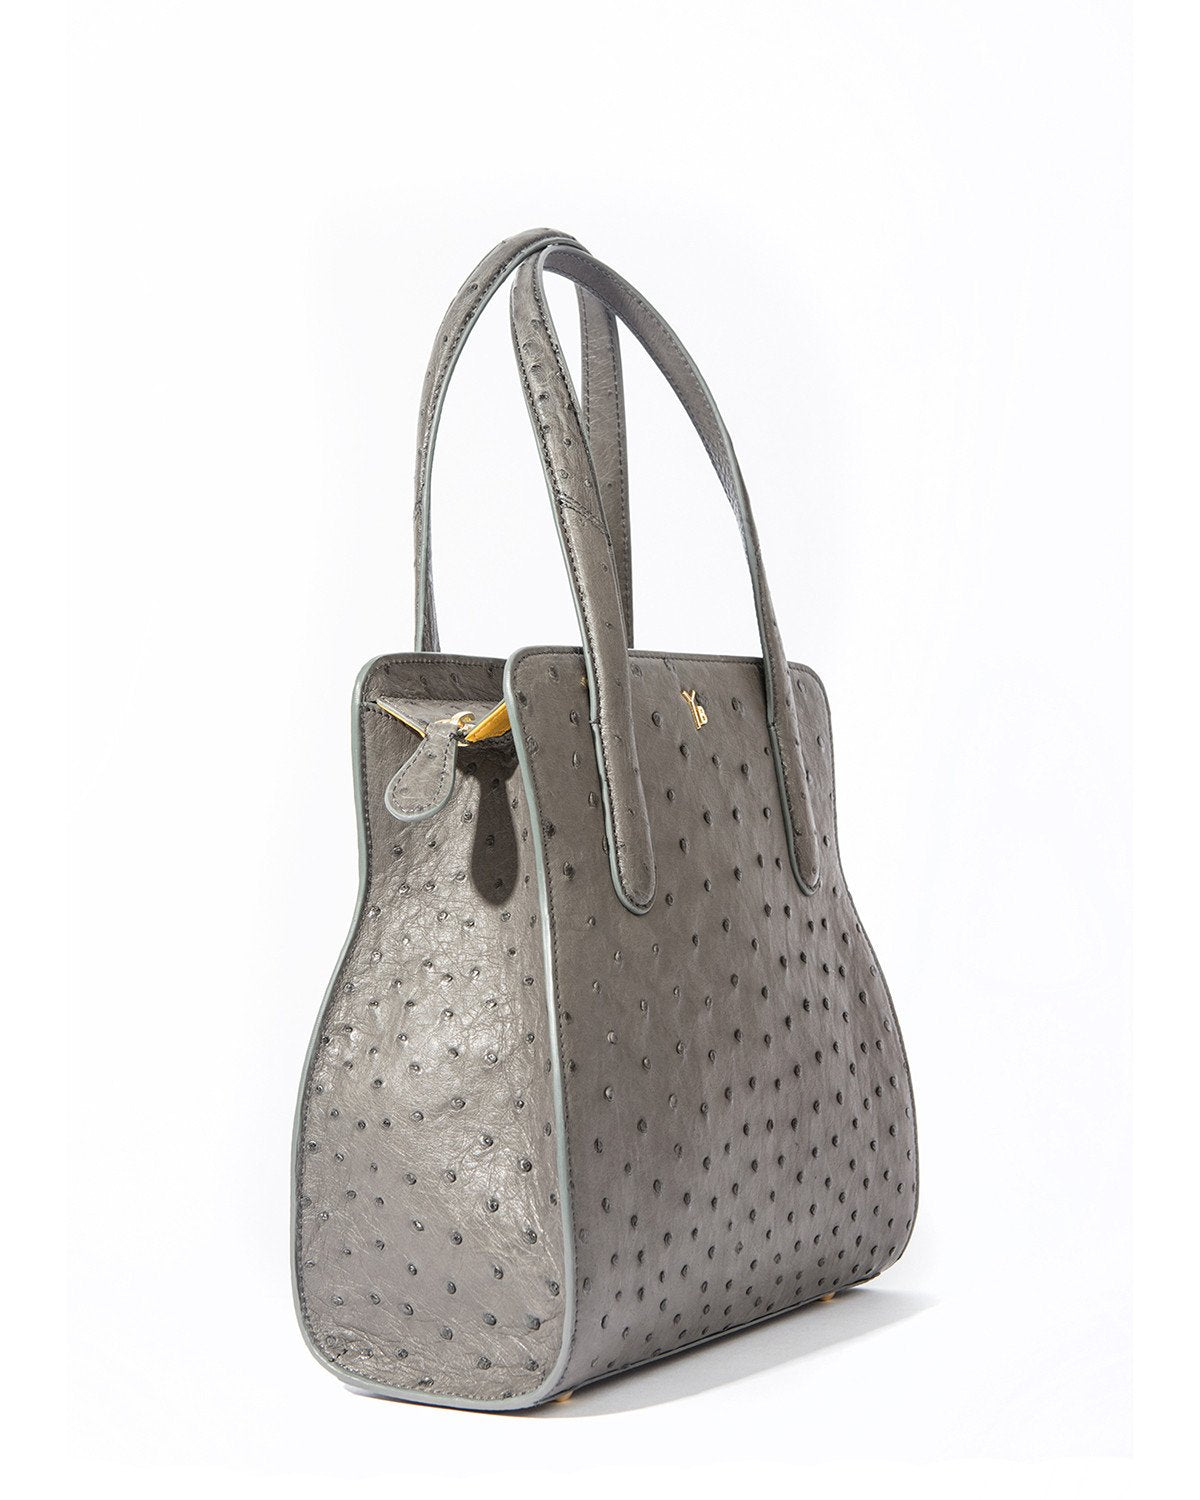 YB ADAM S Tote Grey Ostrich Side View Zipper Pull